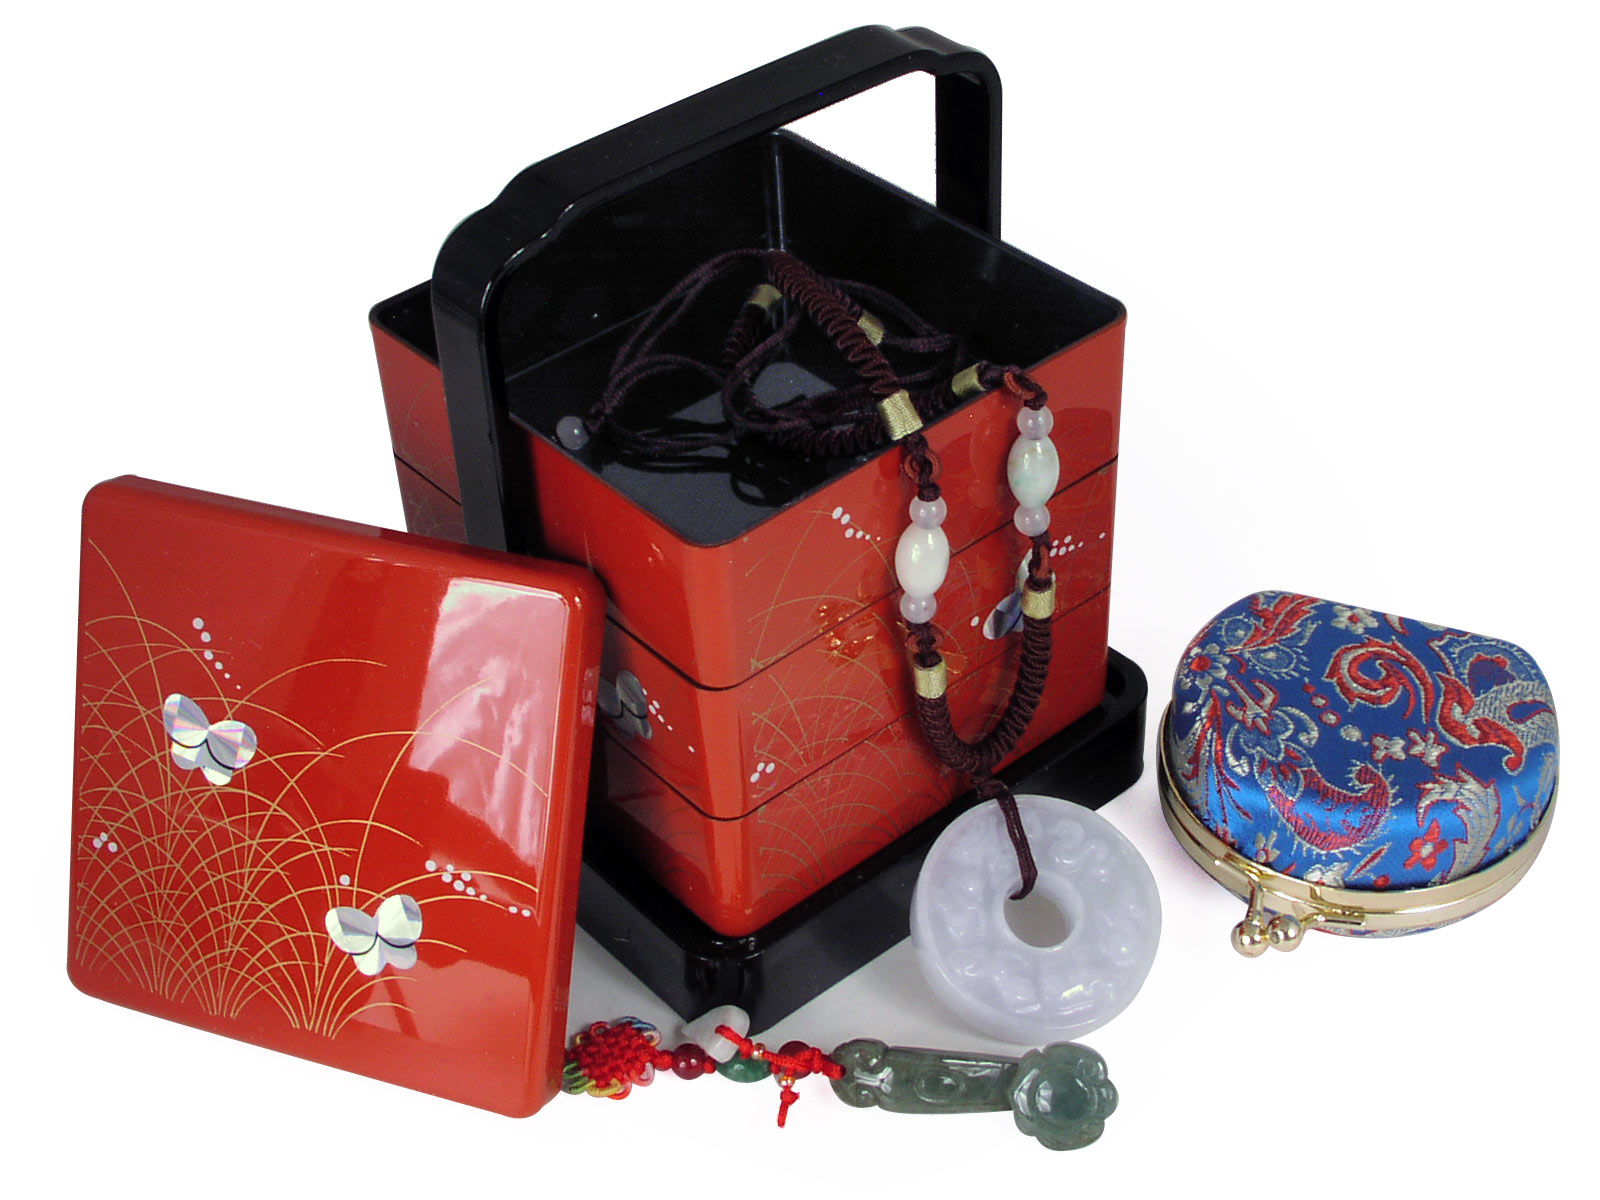 Japanese style box feng shui jade jewelry gift set for Japanese inspired gifts